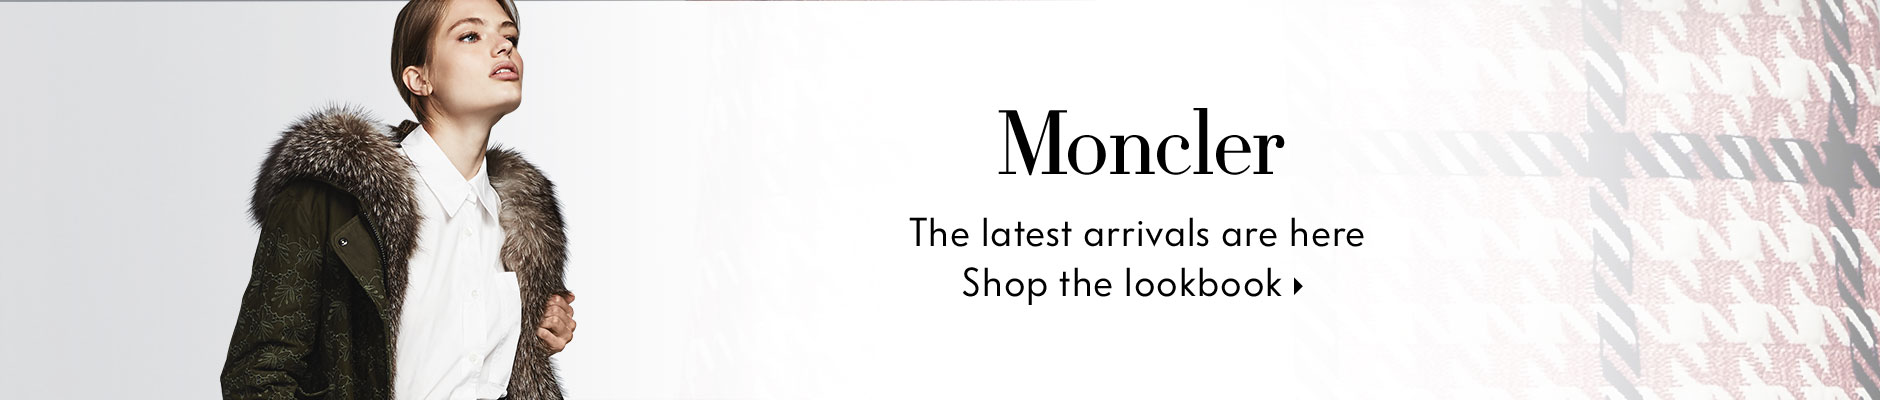 Moncler - The latest arrivals are here